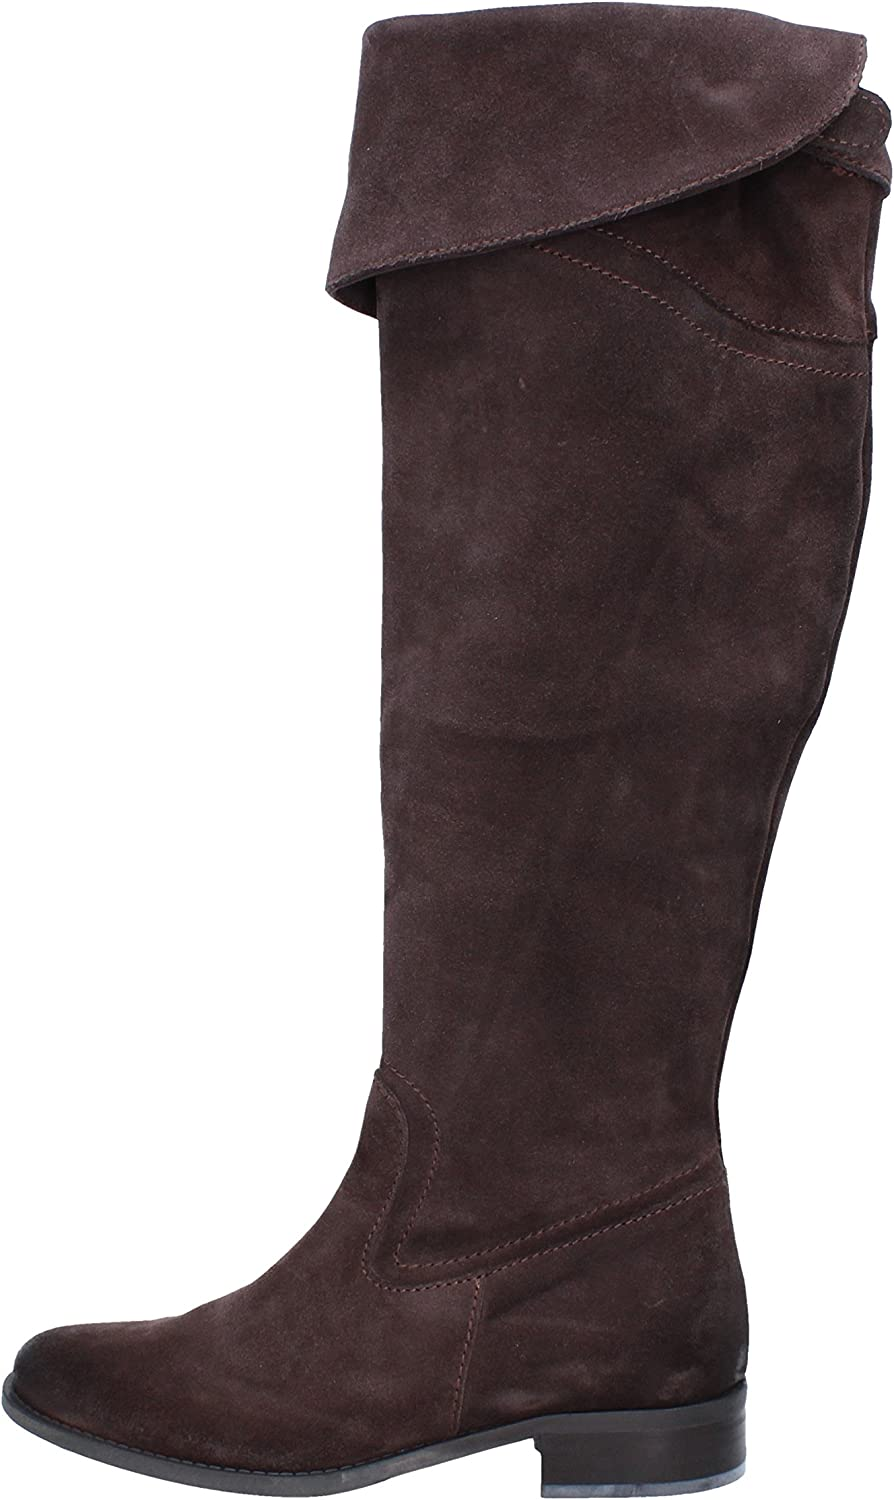 PAPRIKA Boots Womens Suede Brown